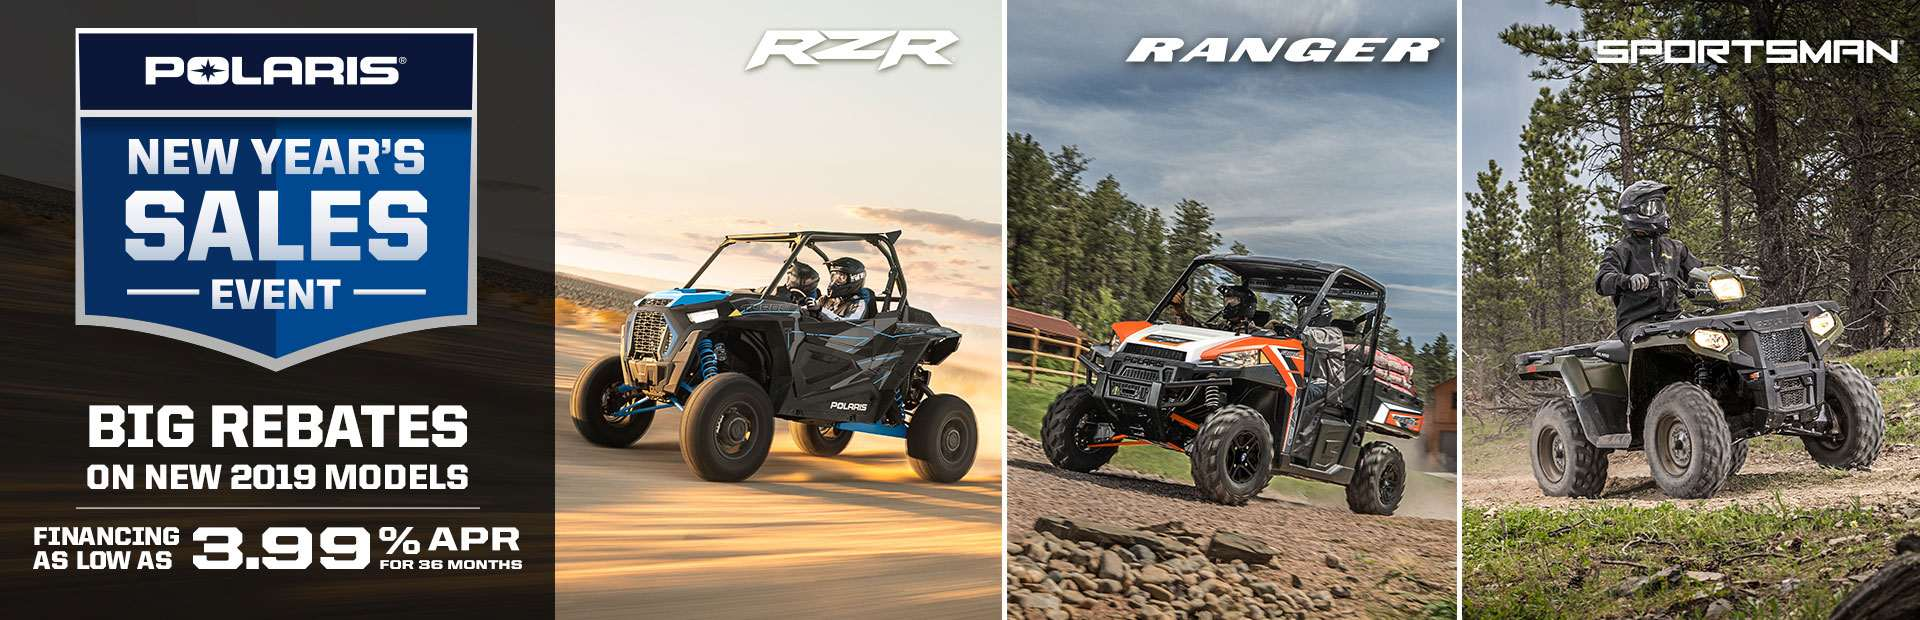 Polaris Industries: New Year's Sales Event